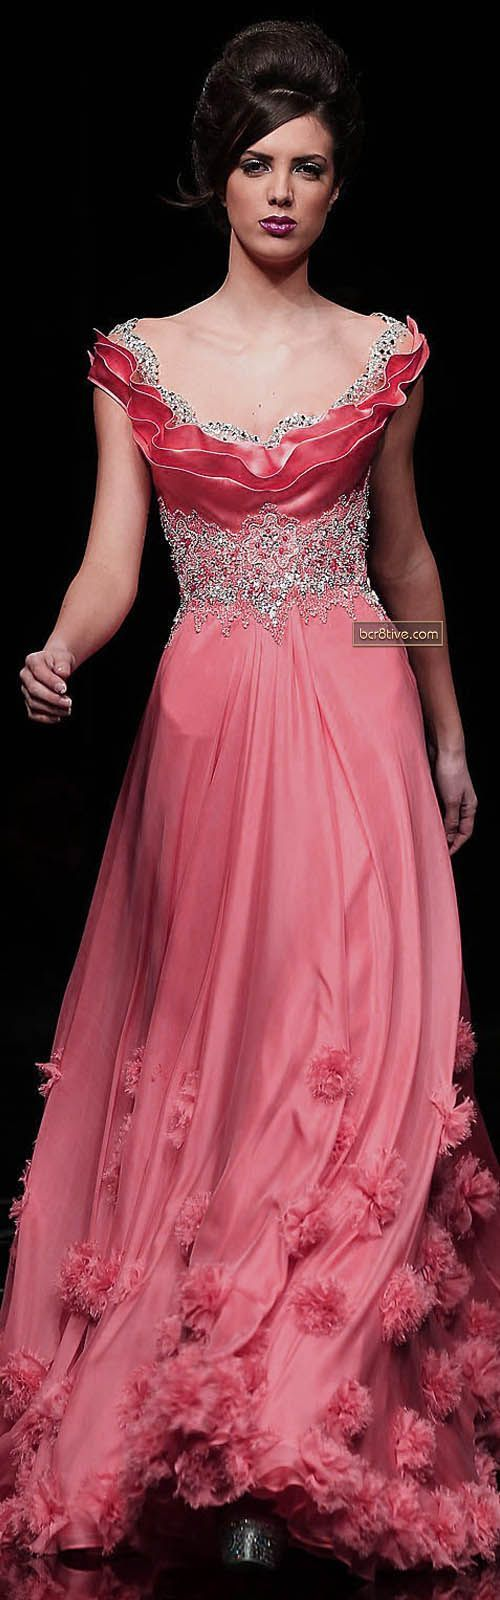 121 best Think Pink images on Pinterest | Weddings, Formal prom ...